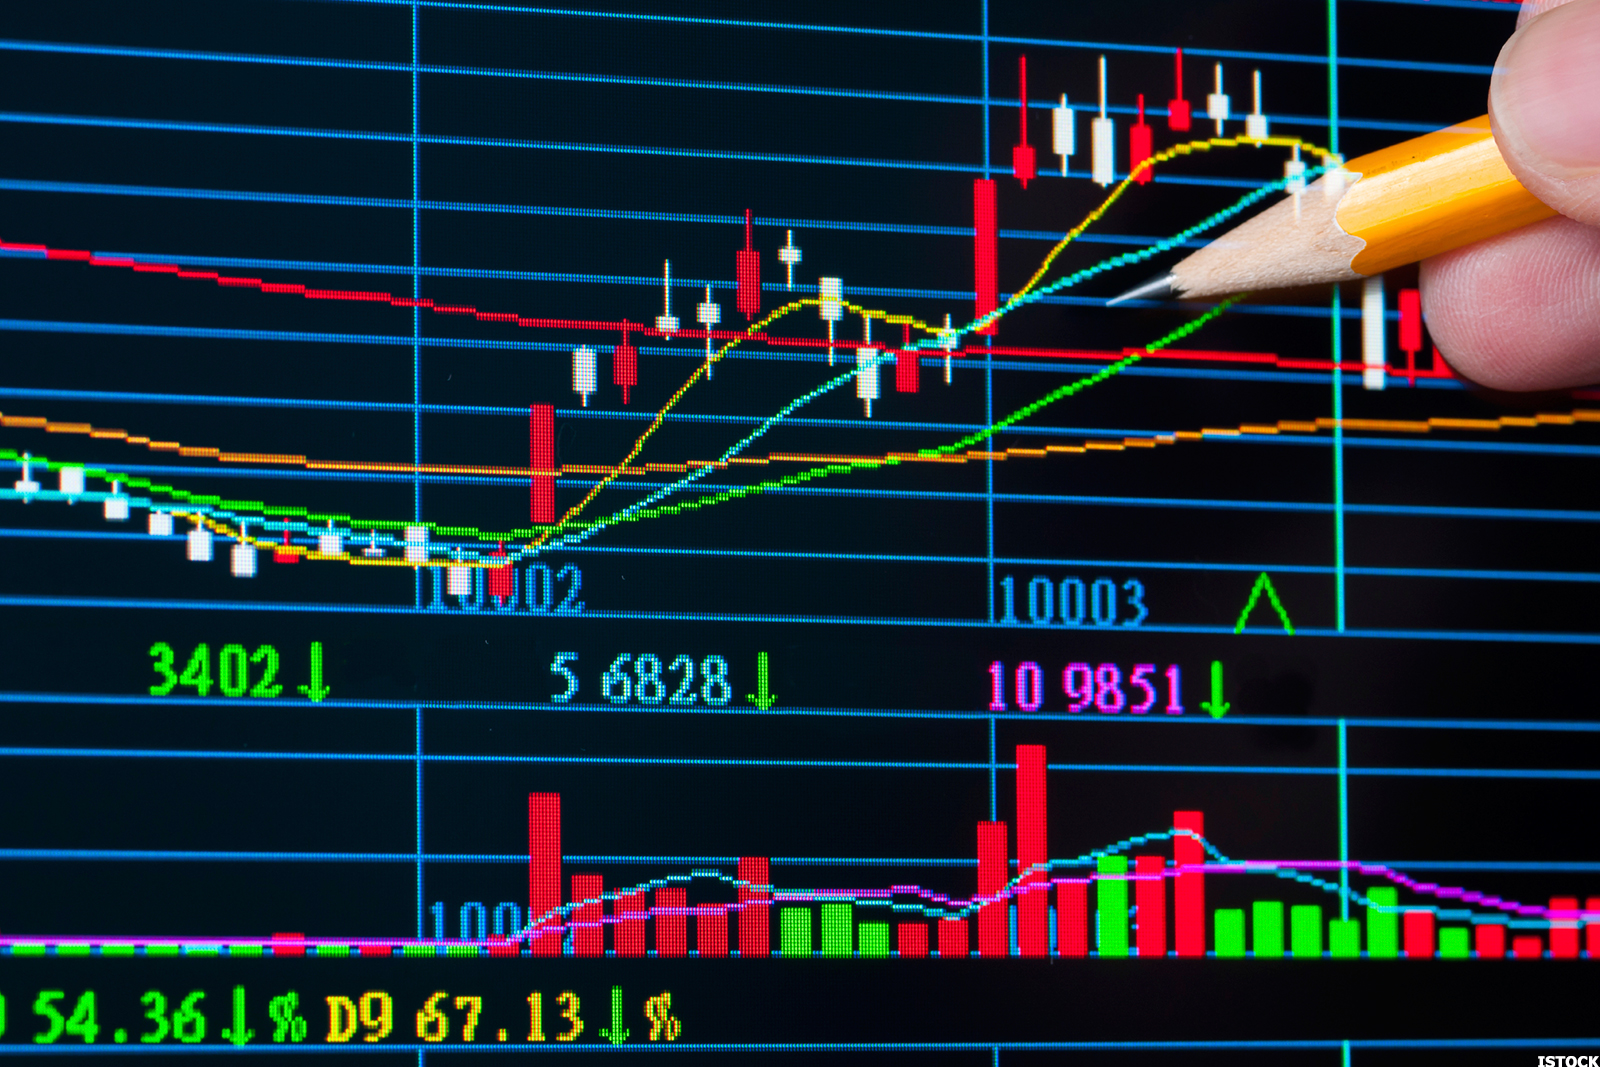 Stock Technical Analysis: Free Stock Analysis, Chart and